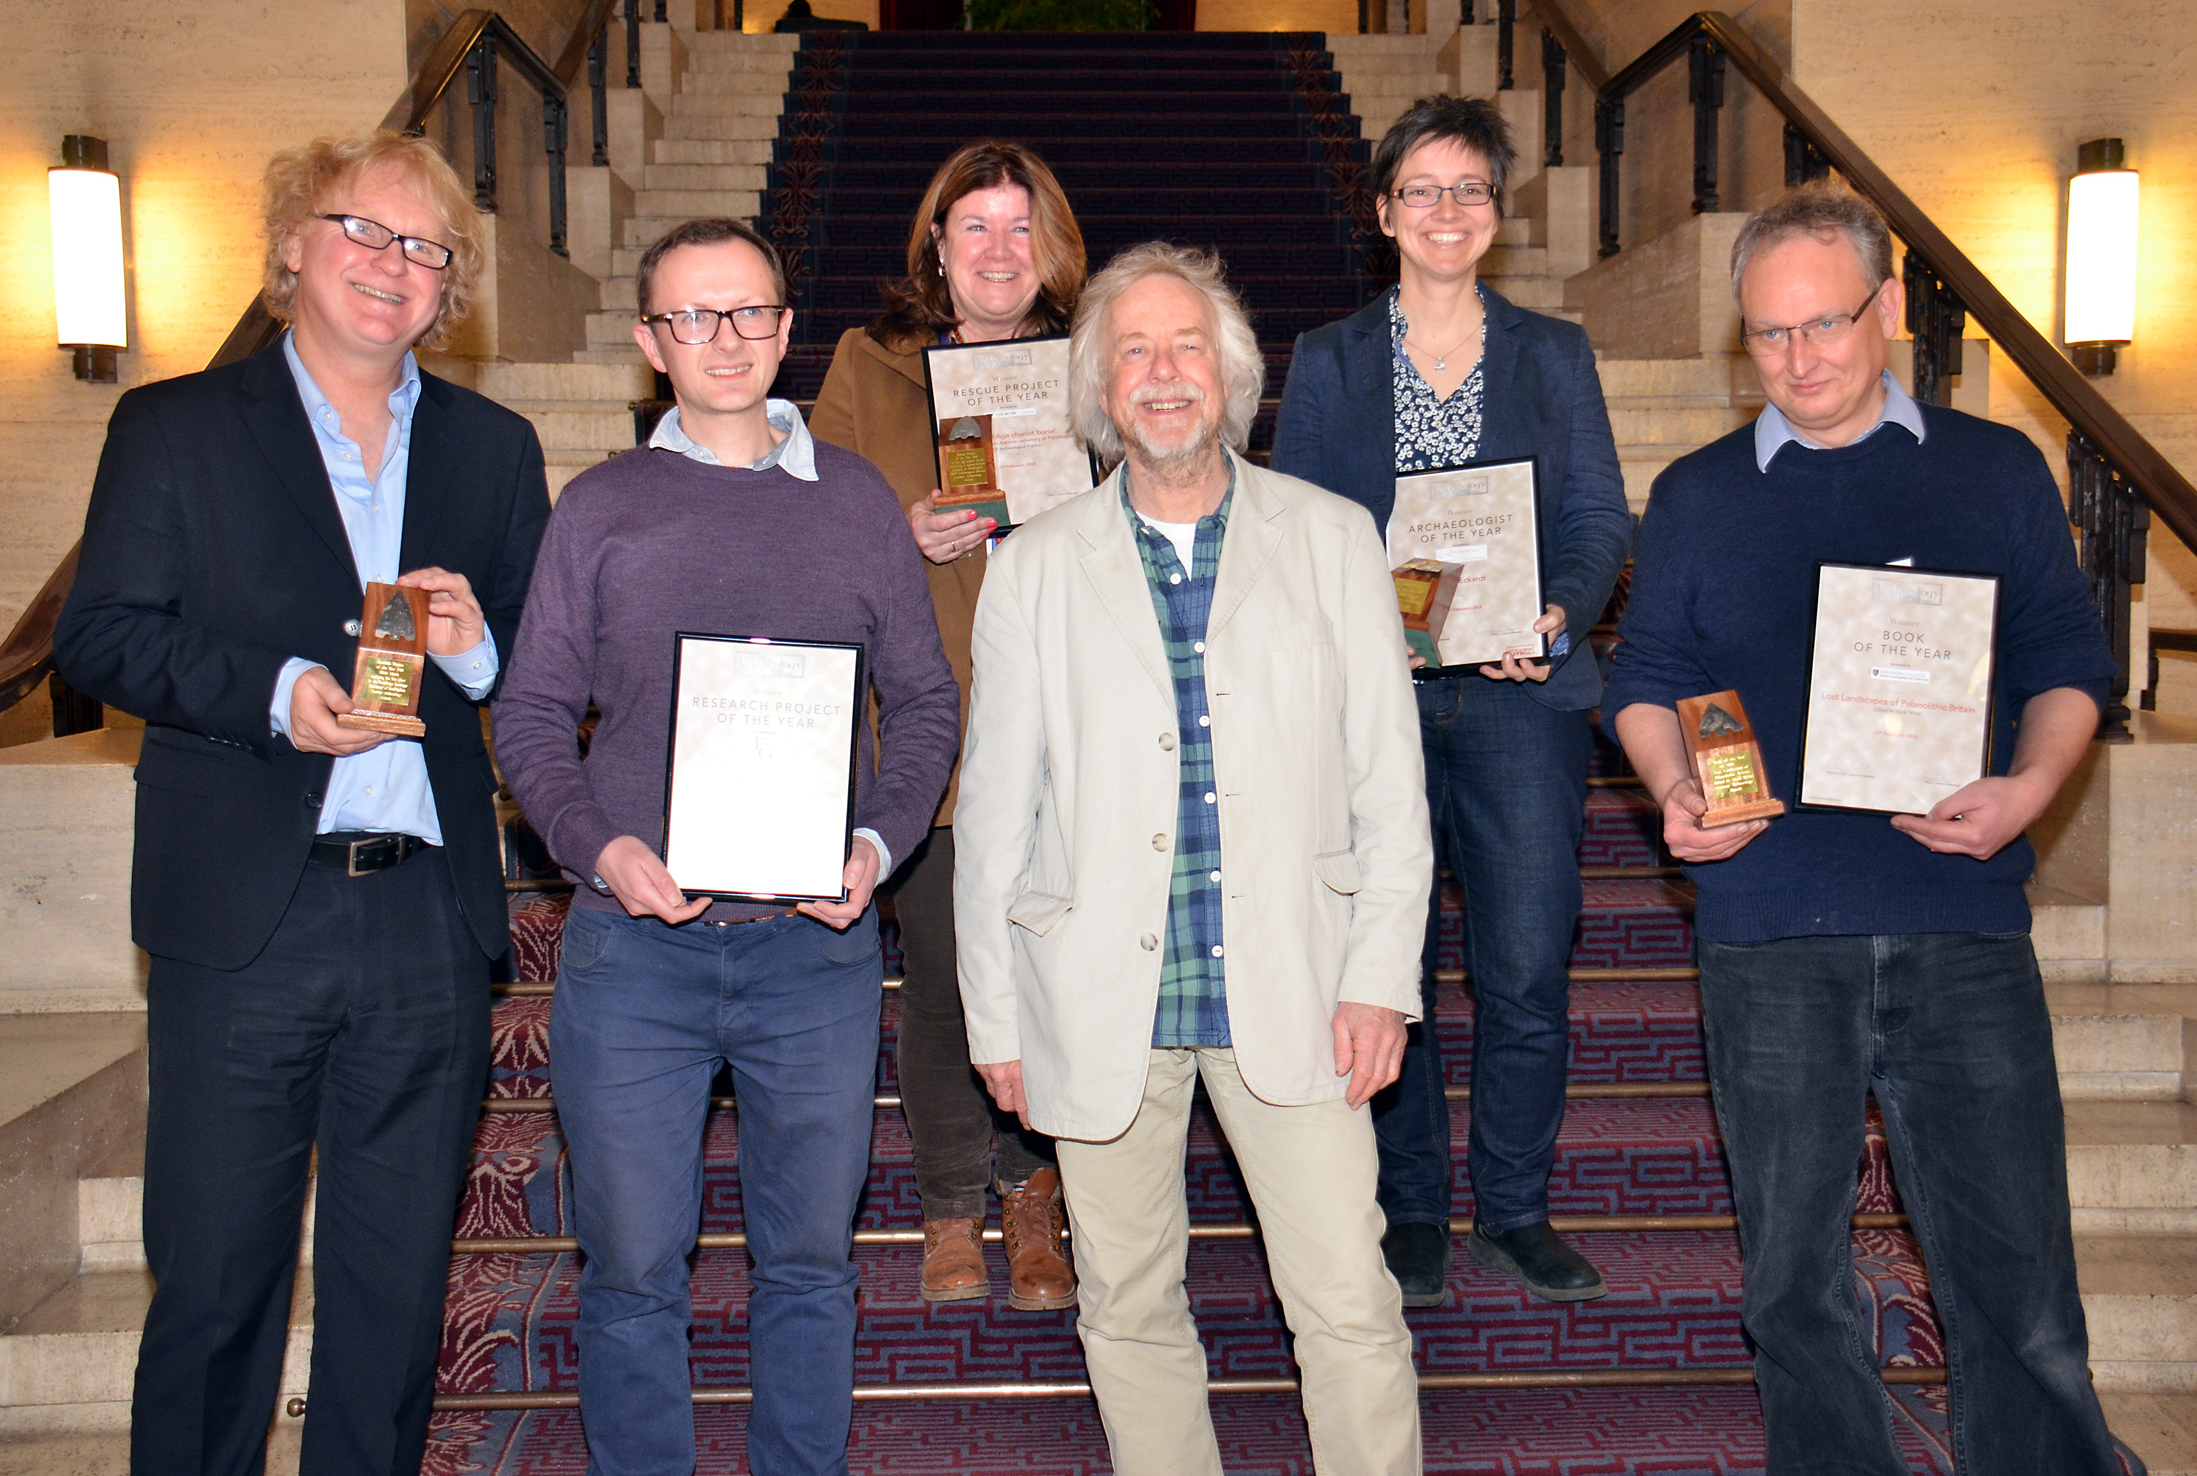 Book prizes 2018 uk team